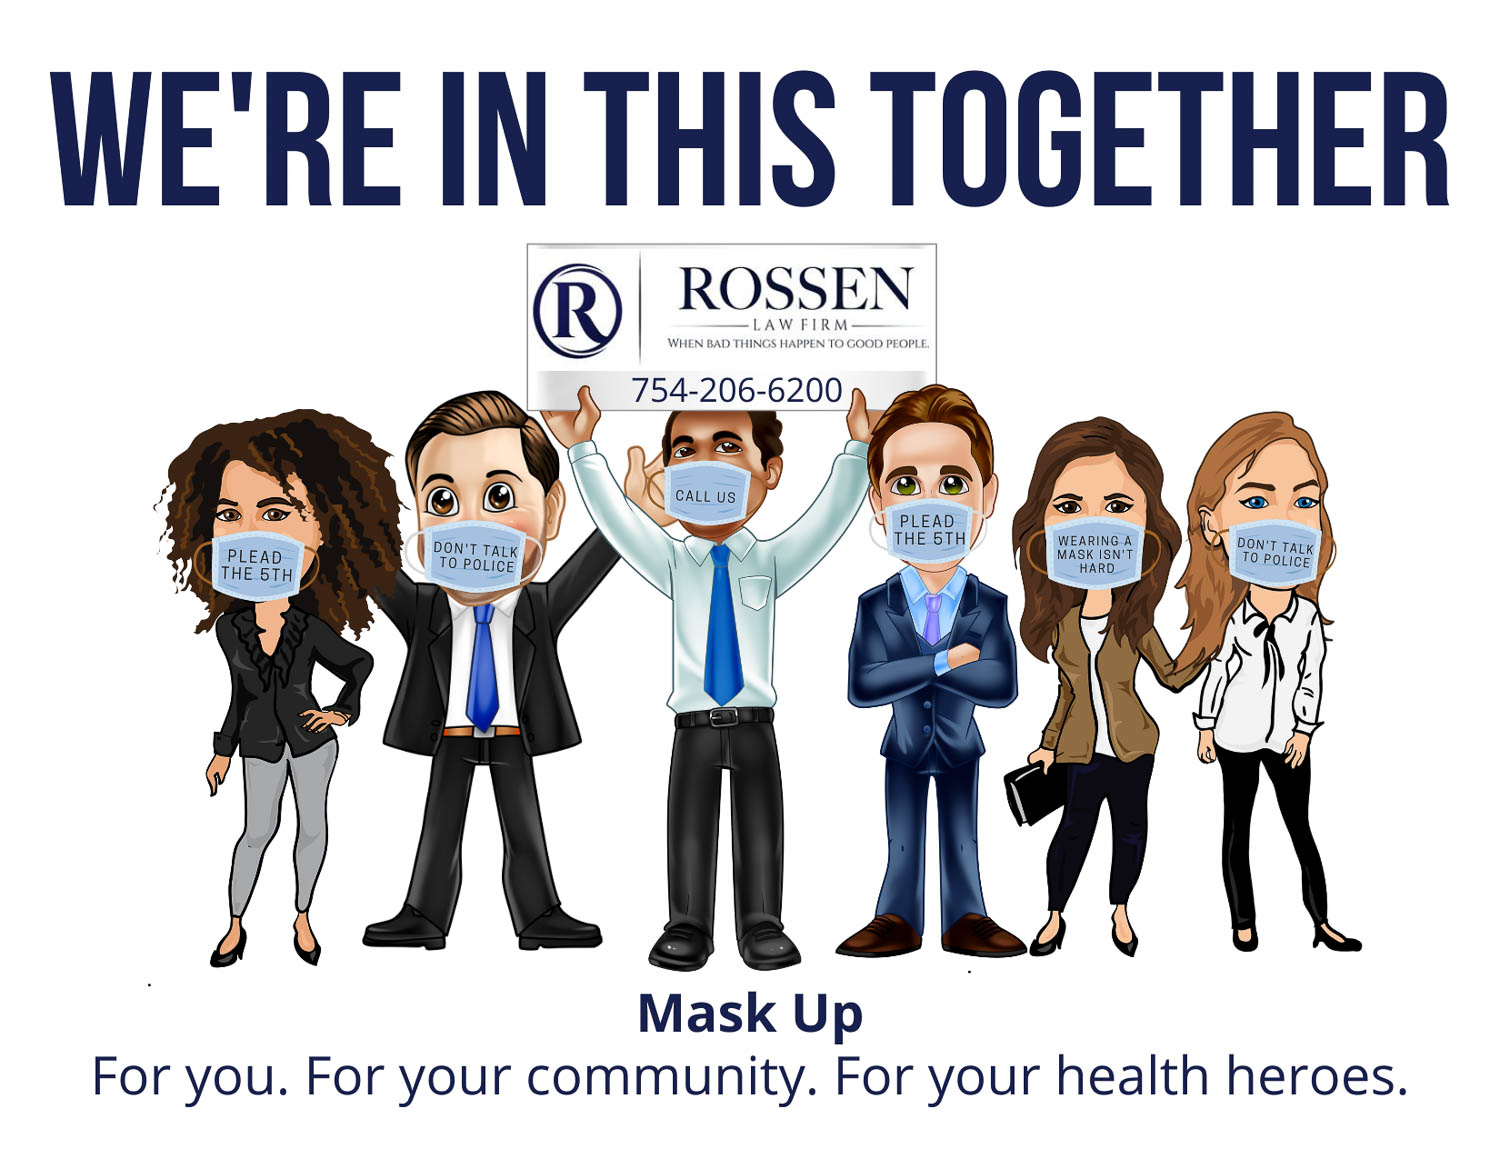 wearing a mask violates constitutional rights think again rossen law firm